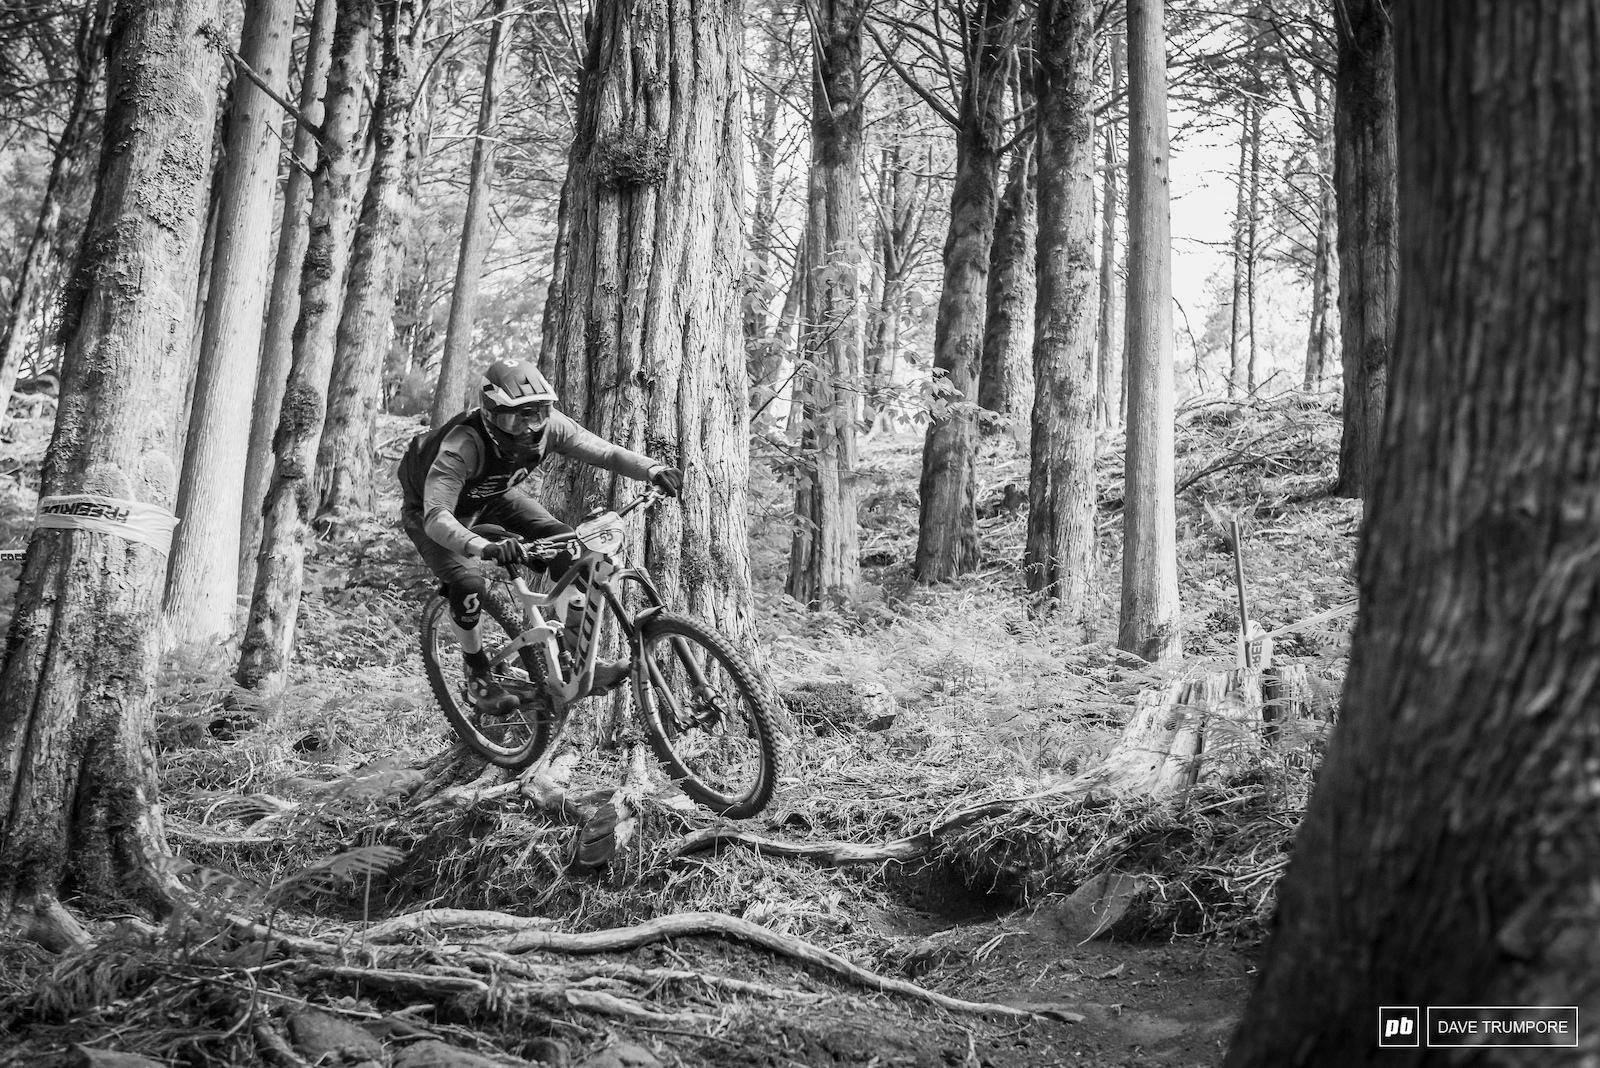 Things get rutted and rooty ion the woods on stage 6